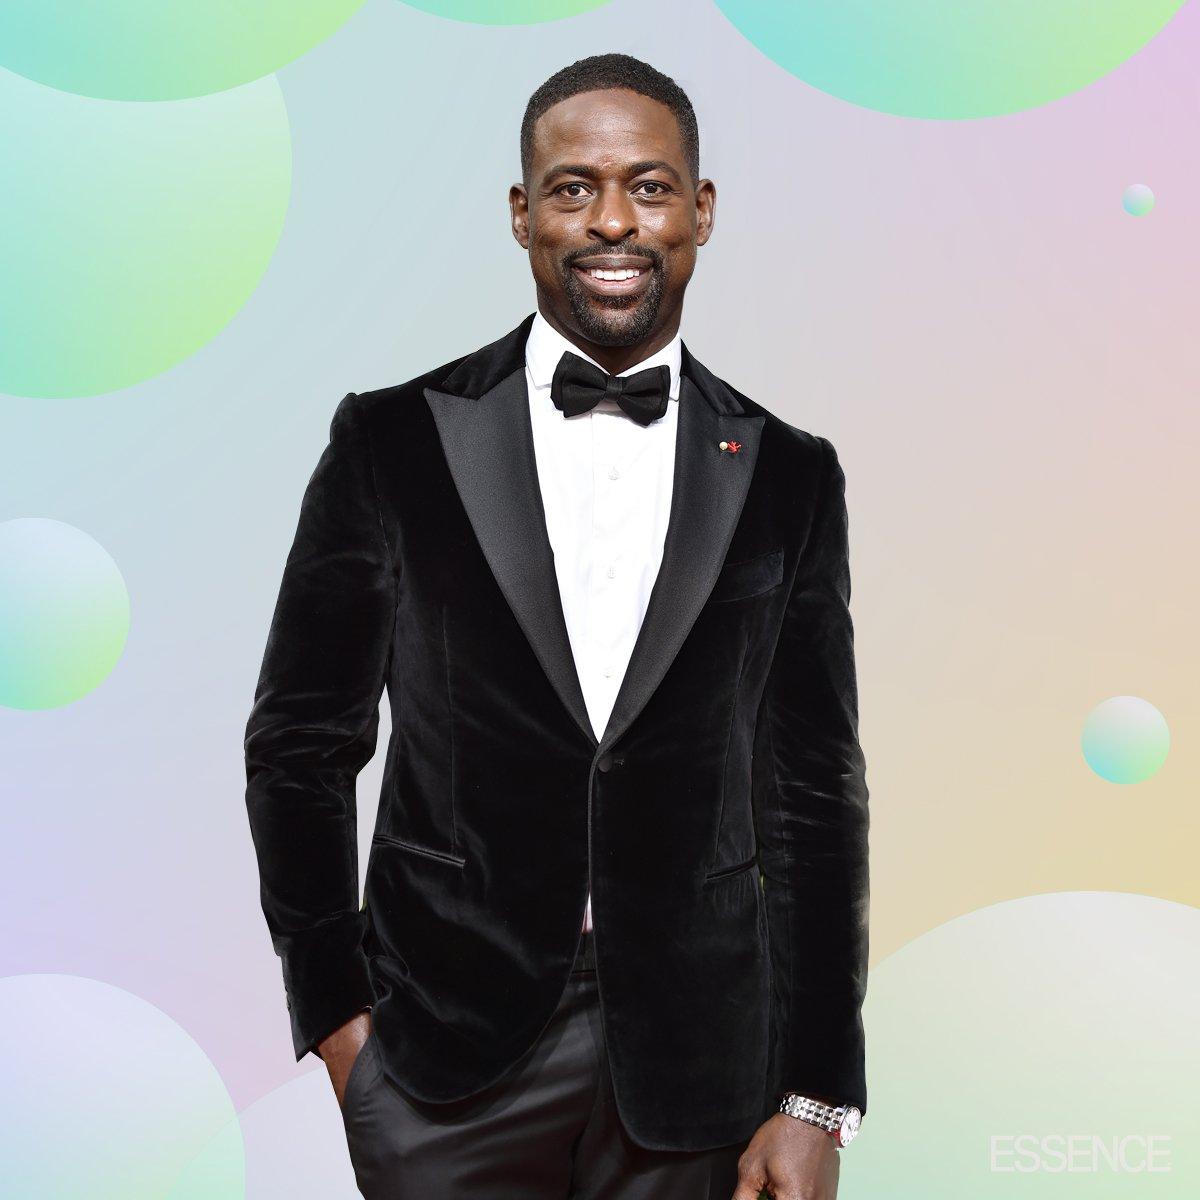 .@sterlingkb1 is the first African American man ever to win Best Actor in a TV Series in the ' 7#GoldenGlobes5-year history. https://t.co/ANRM4P882V